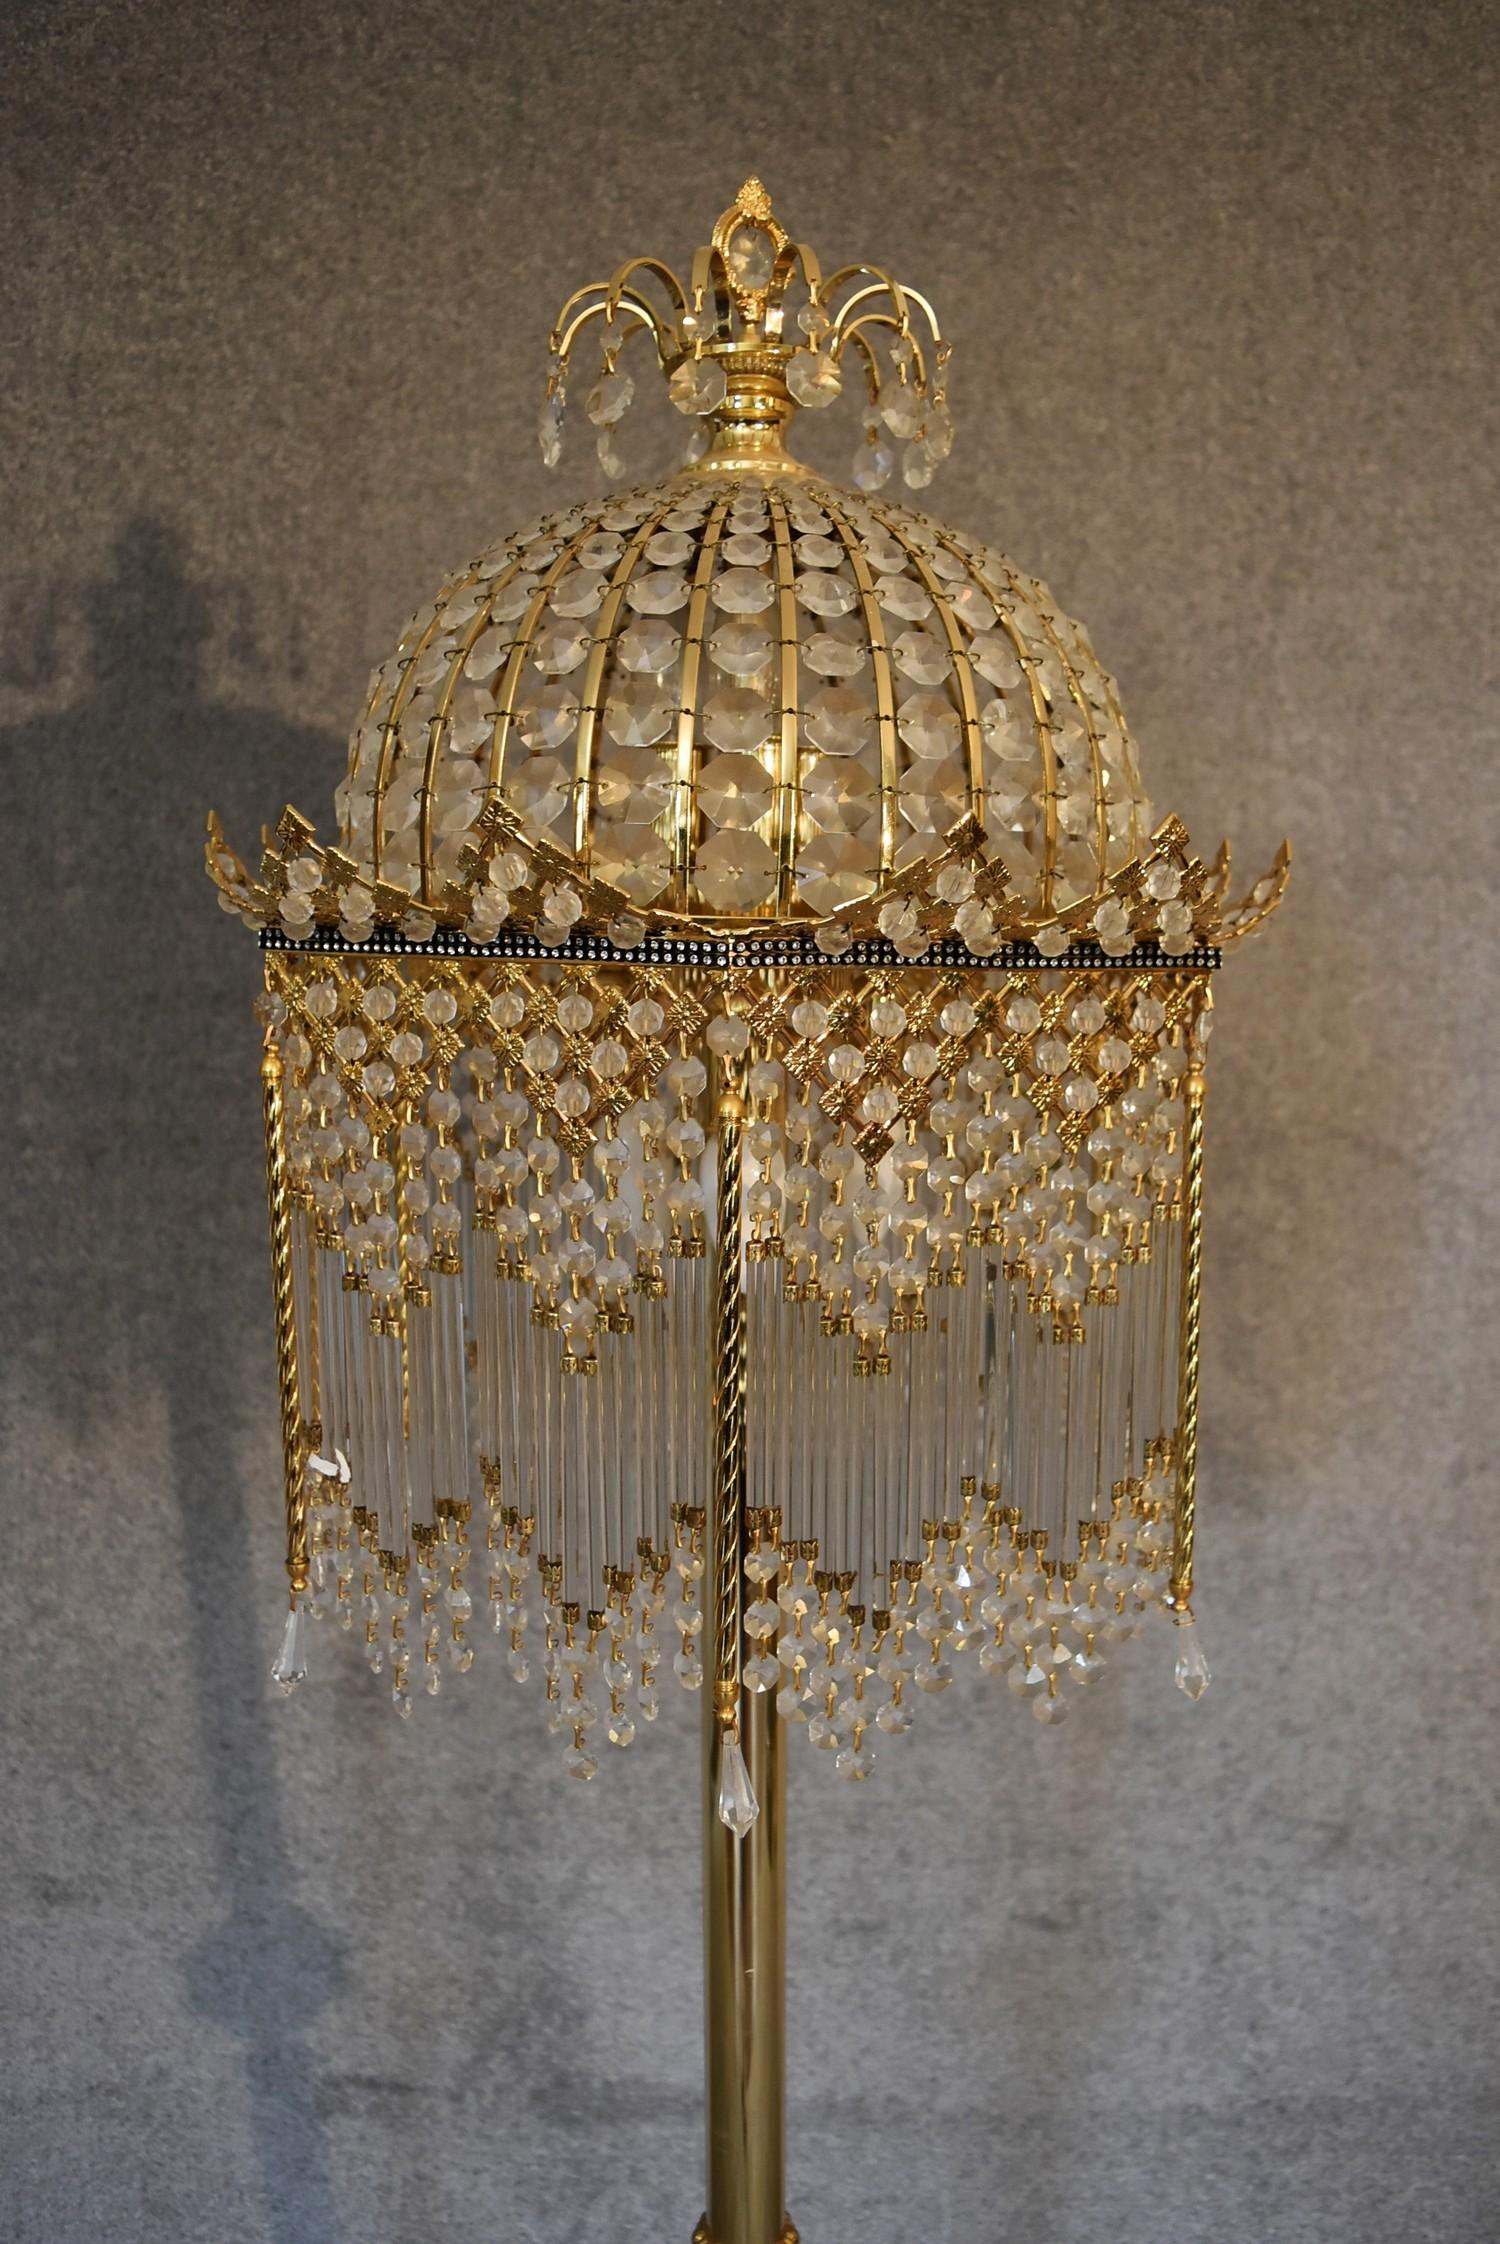 Lot 12 - A gilt metal and crystal standard lamp. 1.7m tall